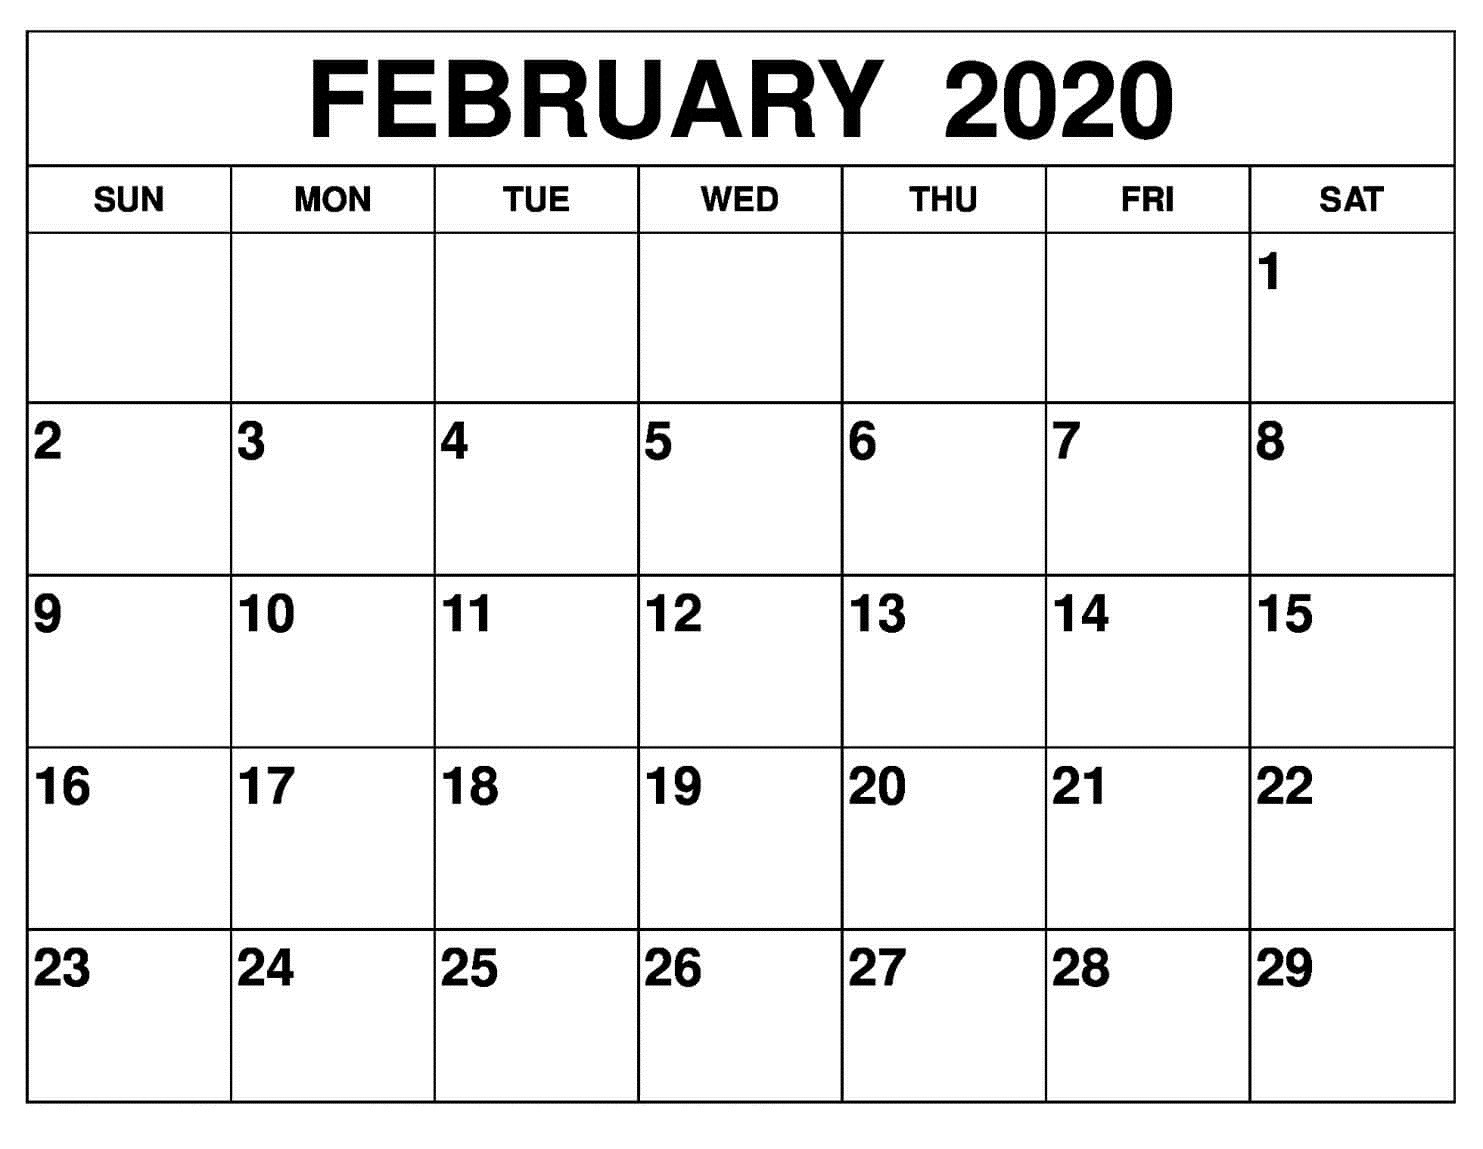 February 2020 Calendar Printable - Auntyno 1 - Medium